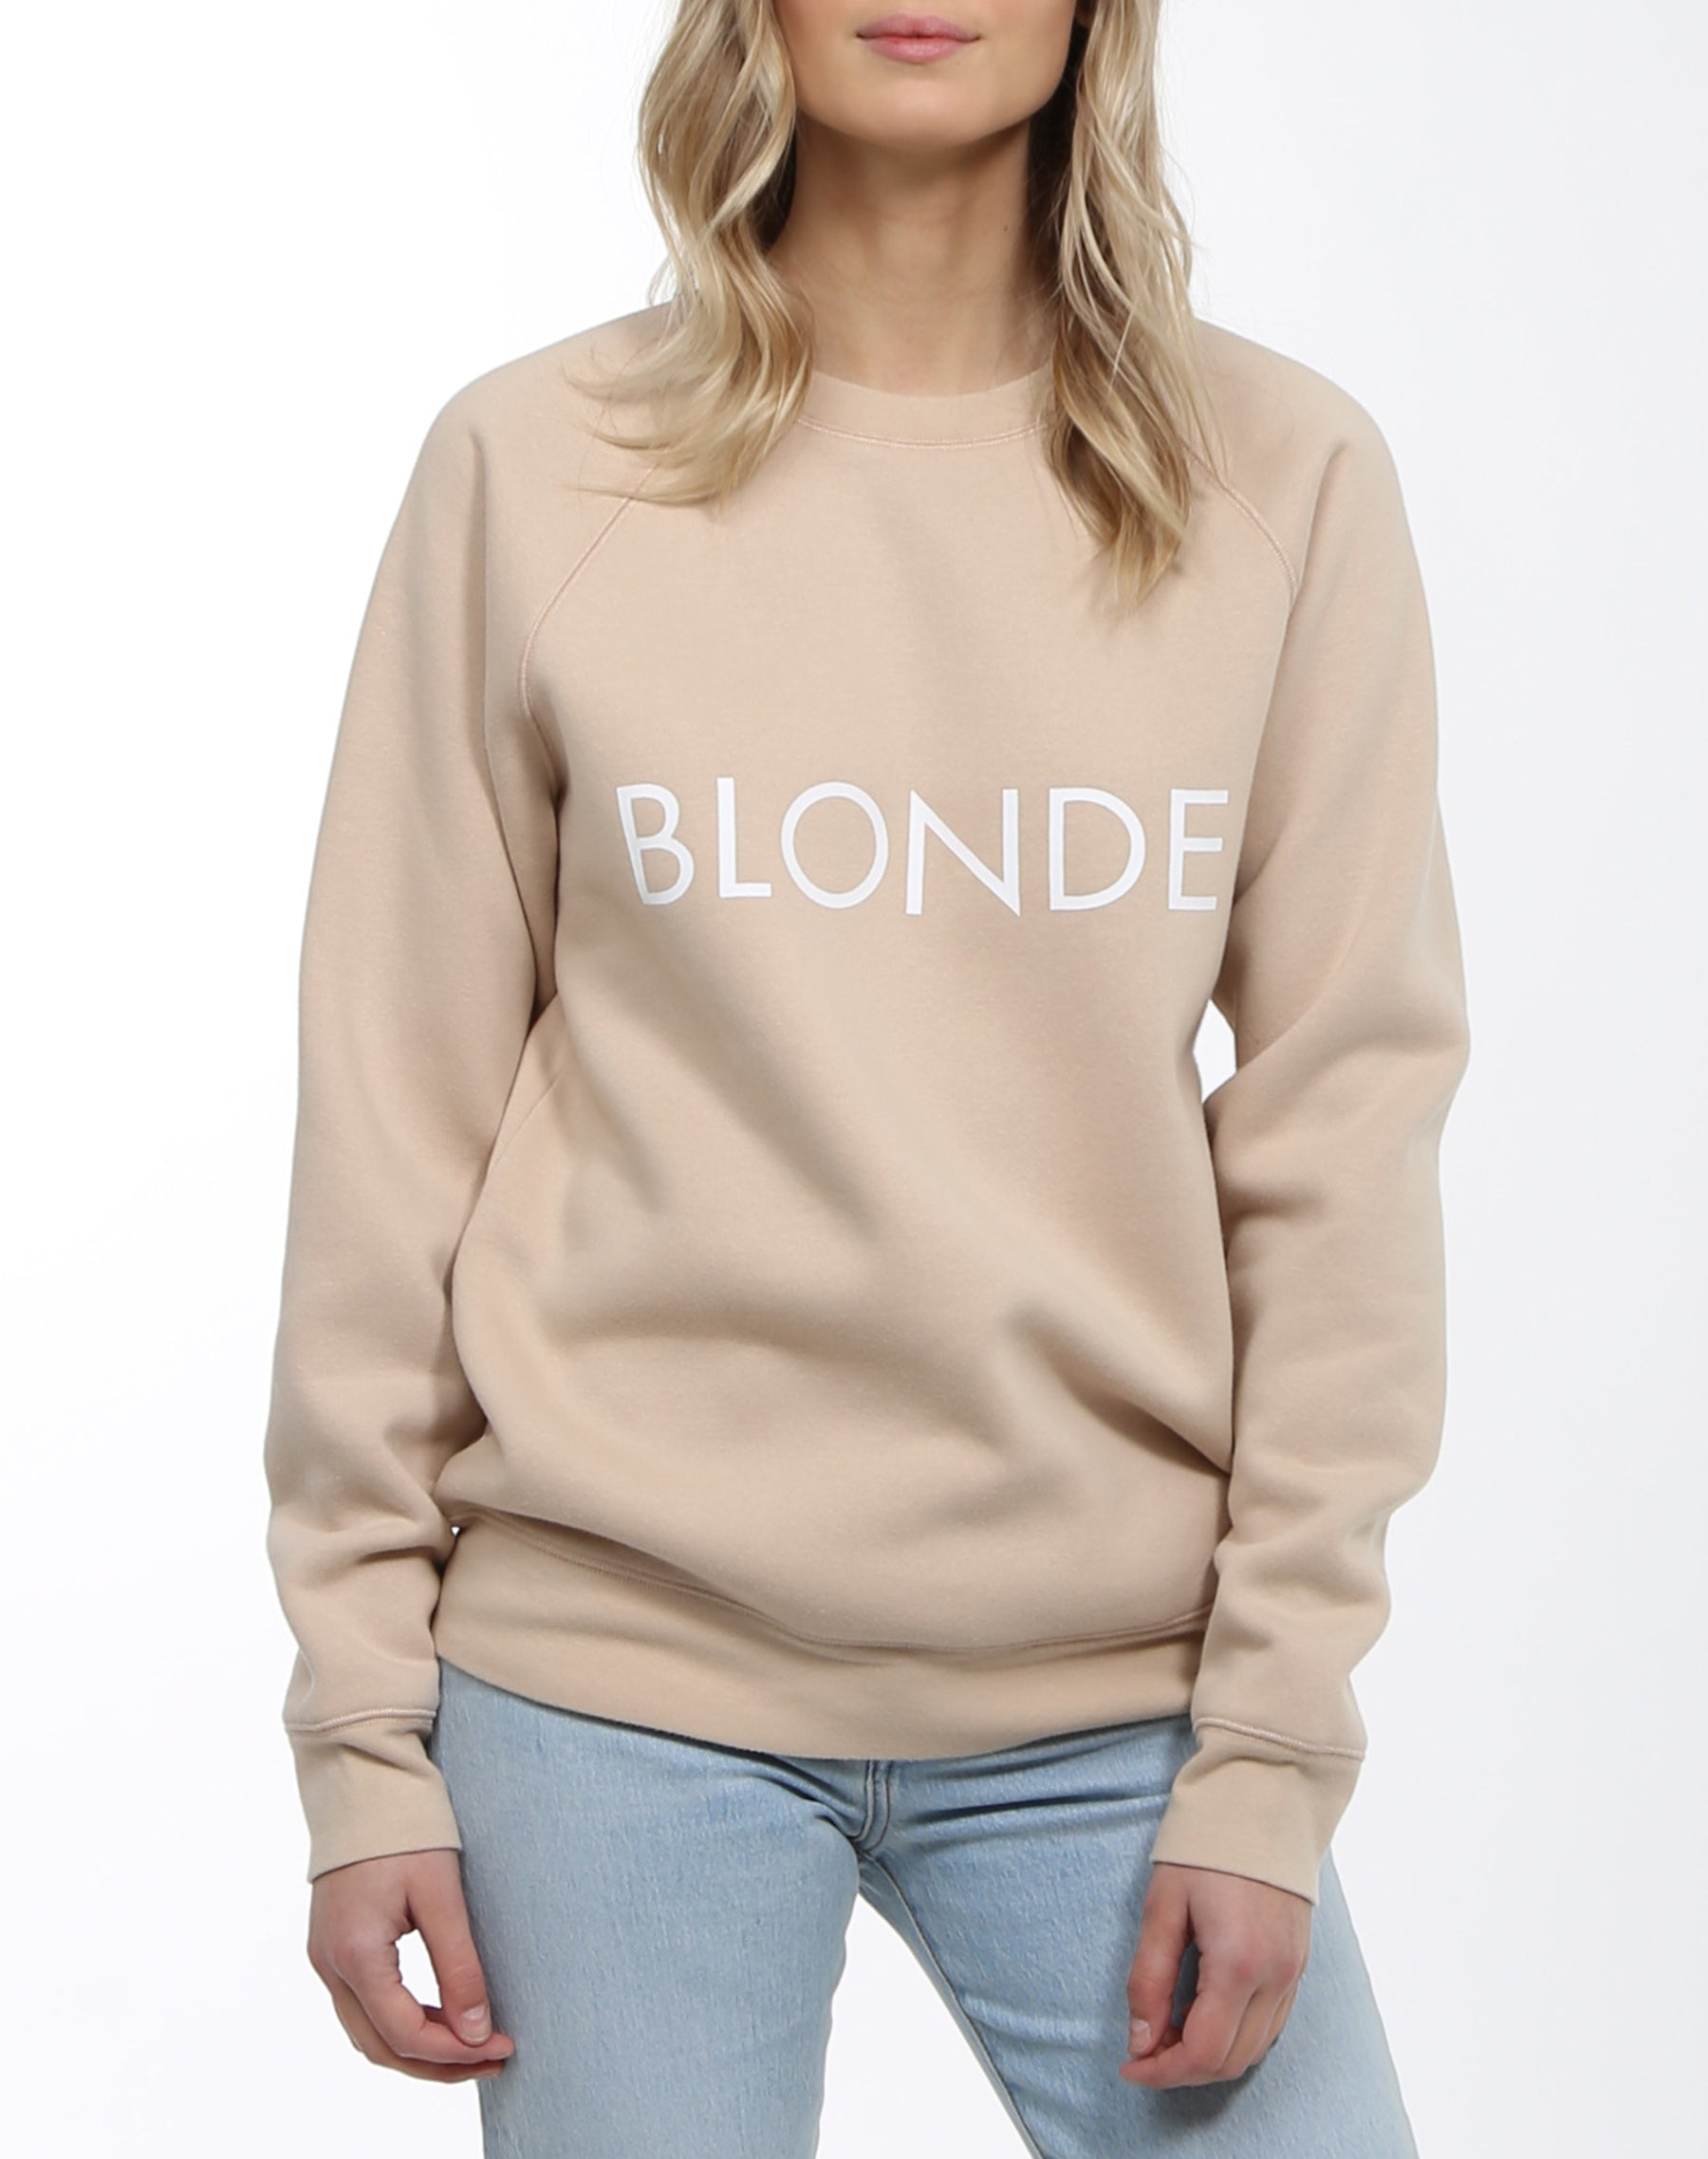 Photo 2 of the Blonde classic crew neck sweatshirt in toasted almond by Brunette the Label.